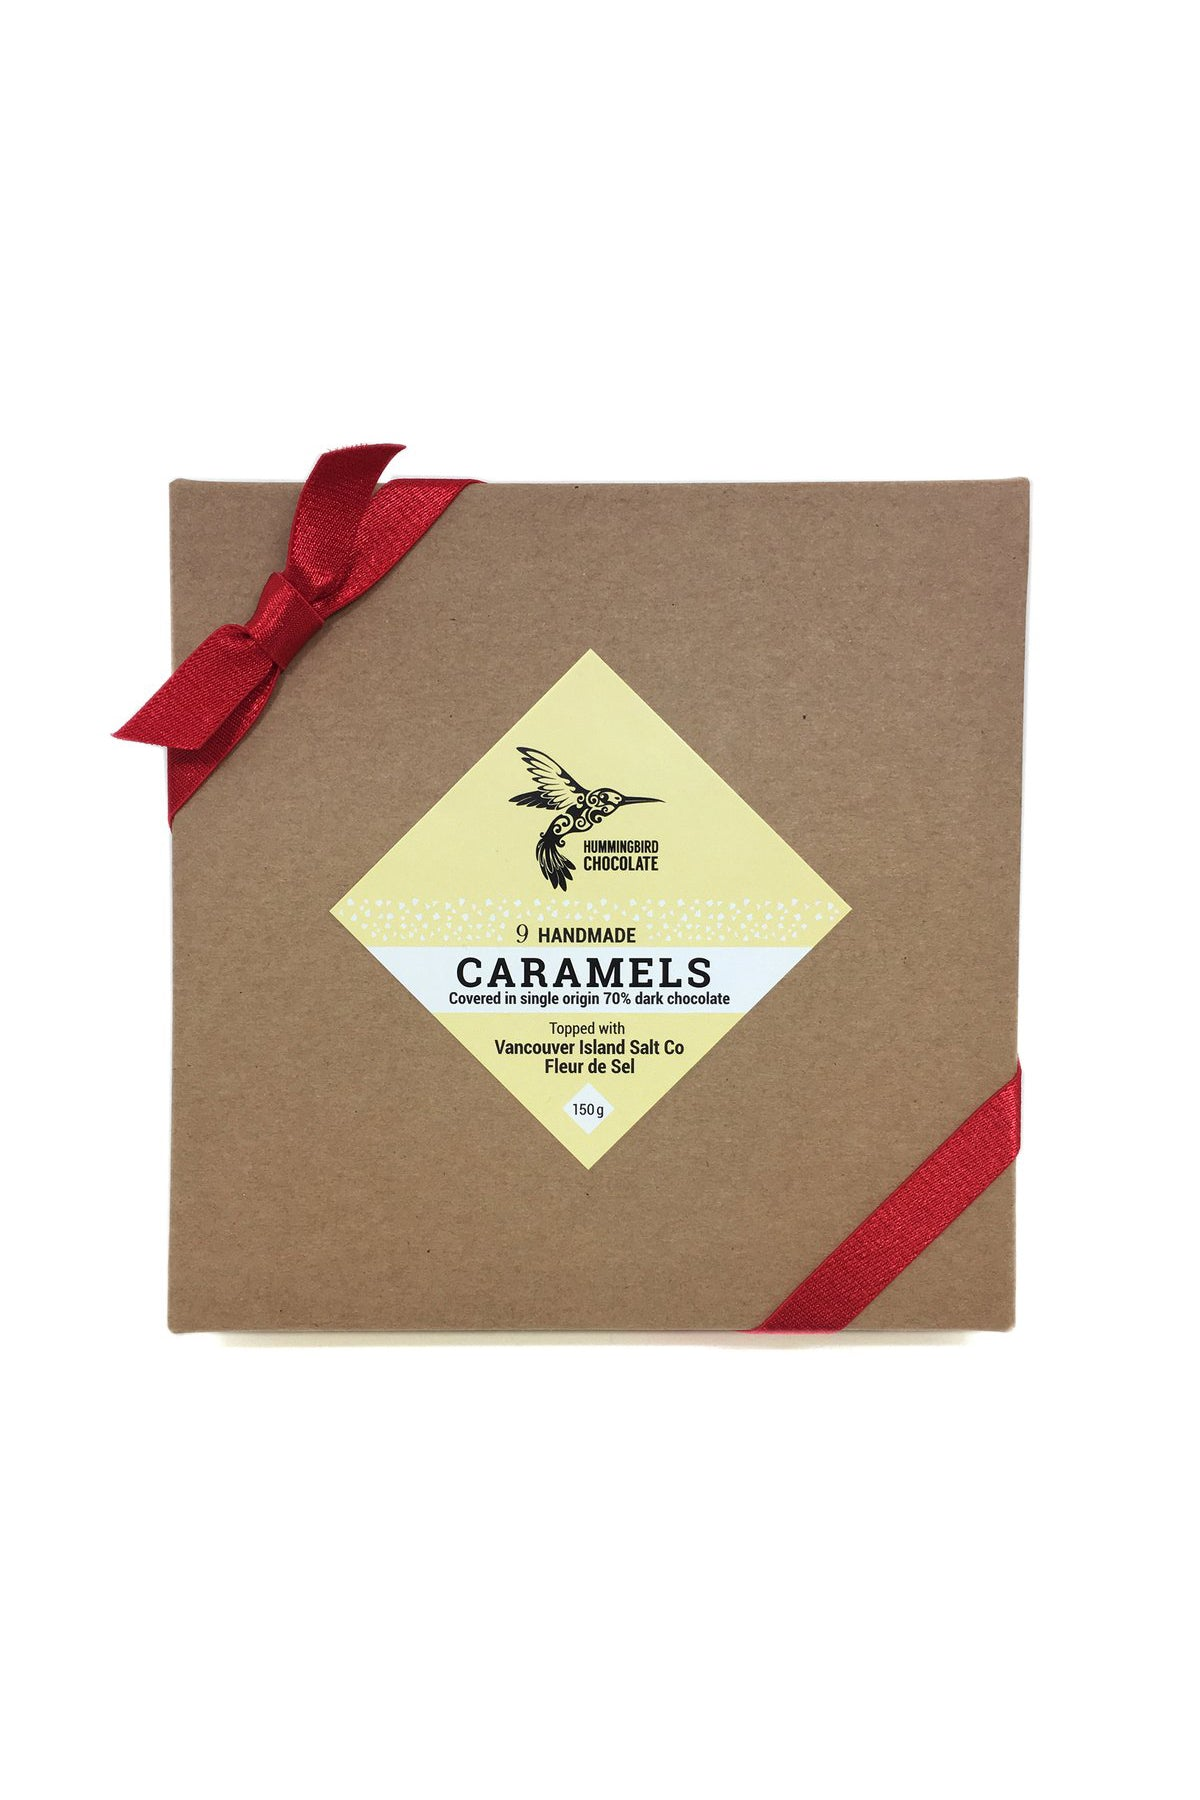 Salted Caramels - 9 piece box